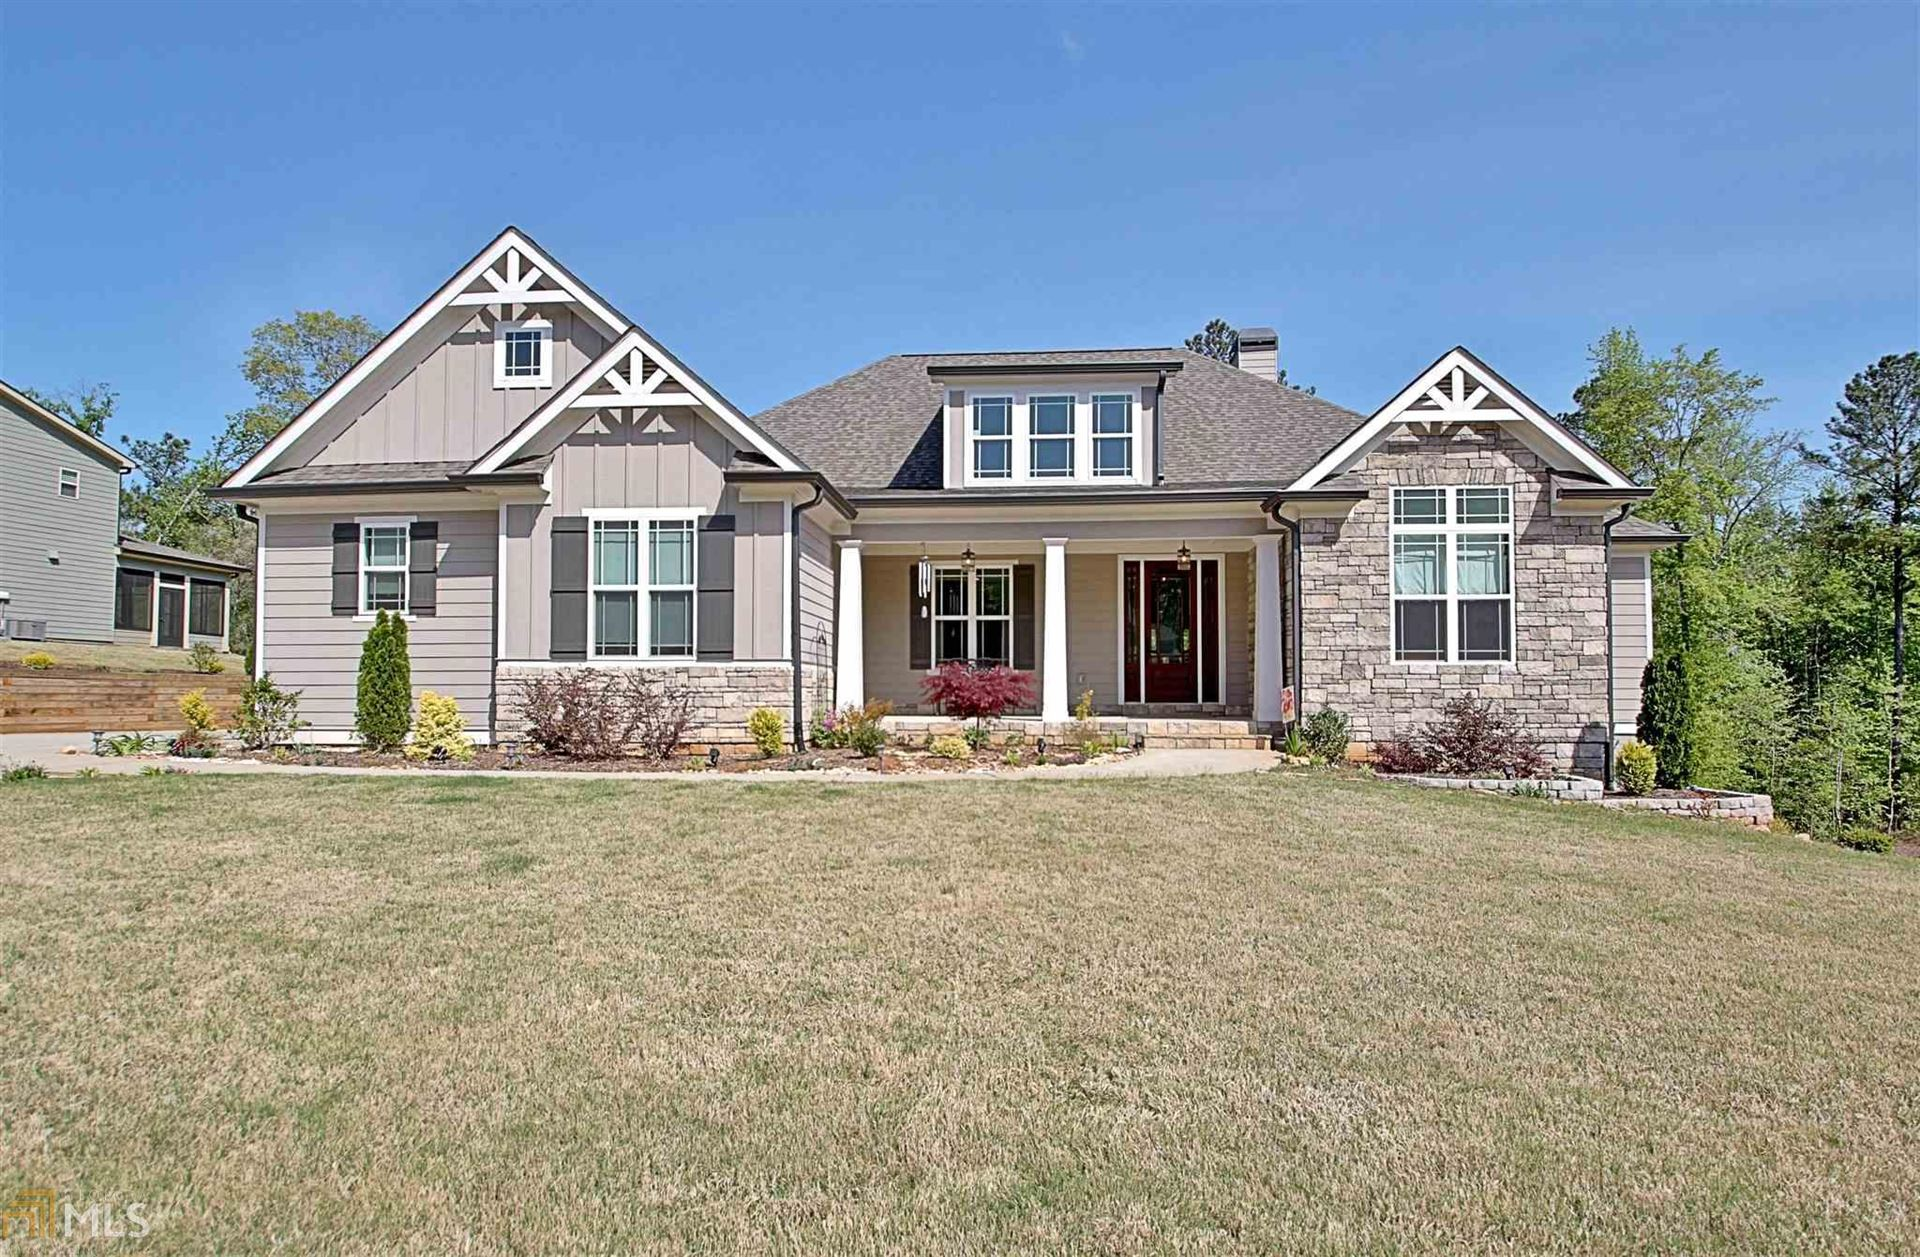 150 Discovery Lake Dr, Fayetteville, GA 30215 - #: 8962953